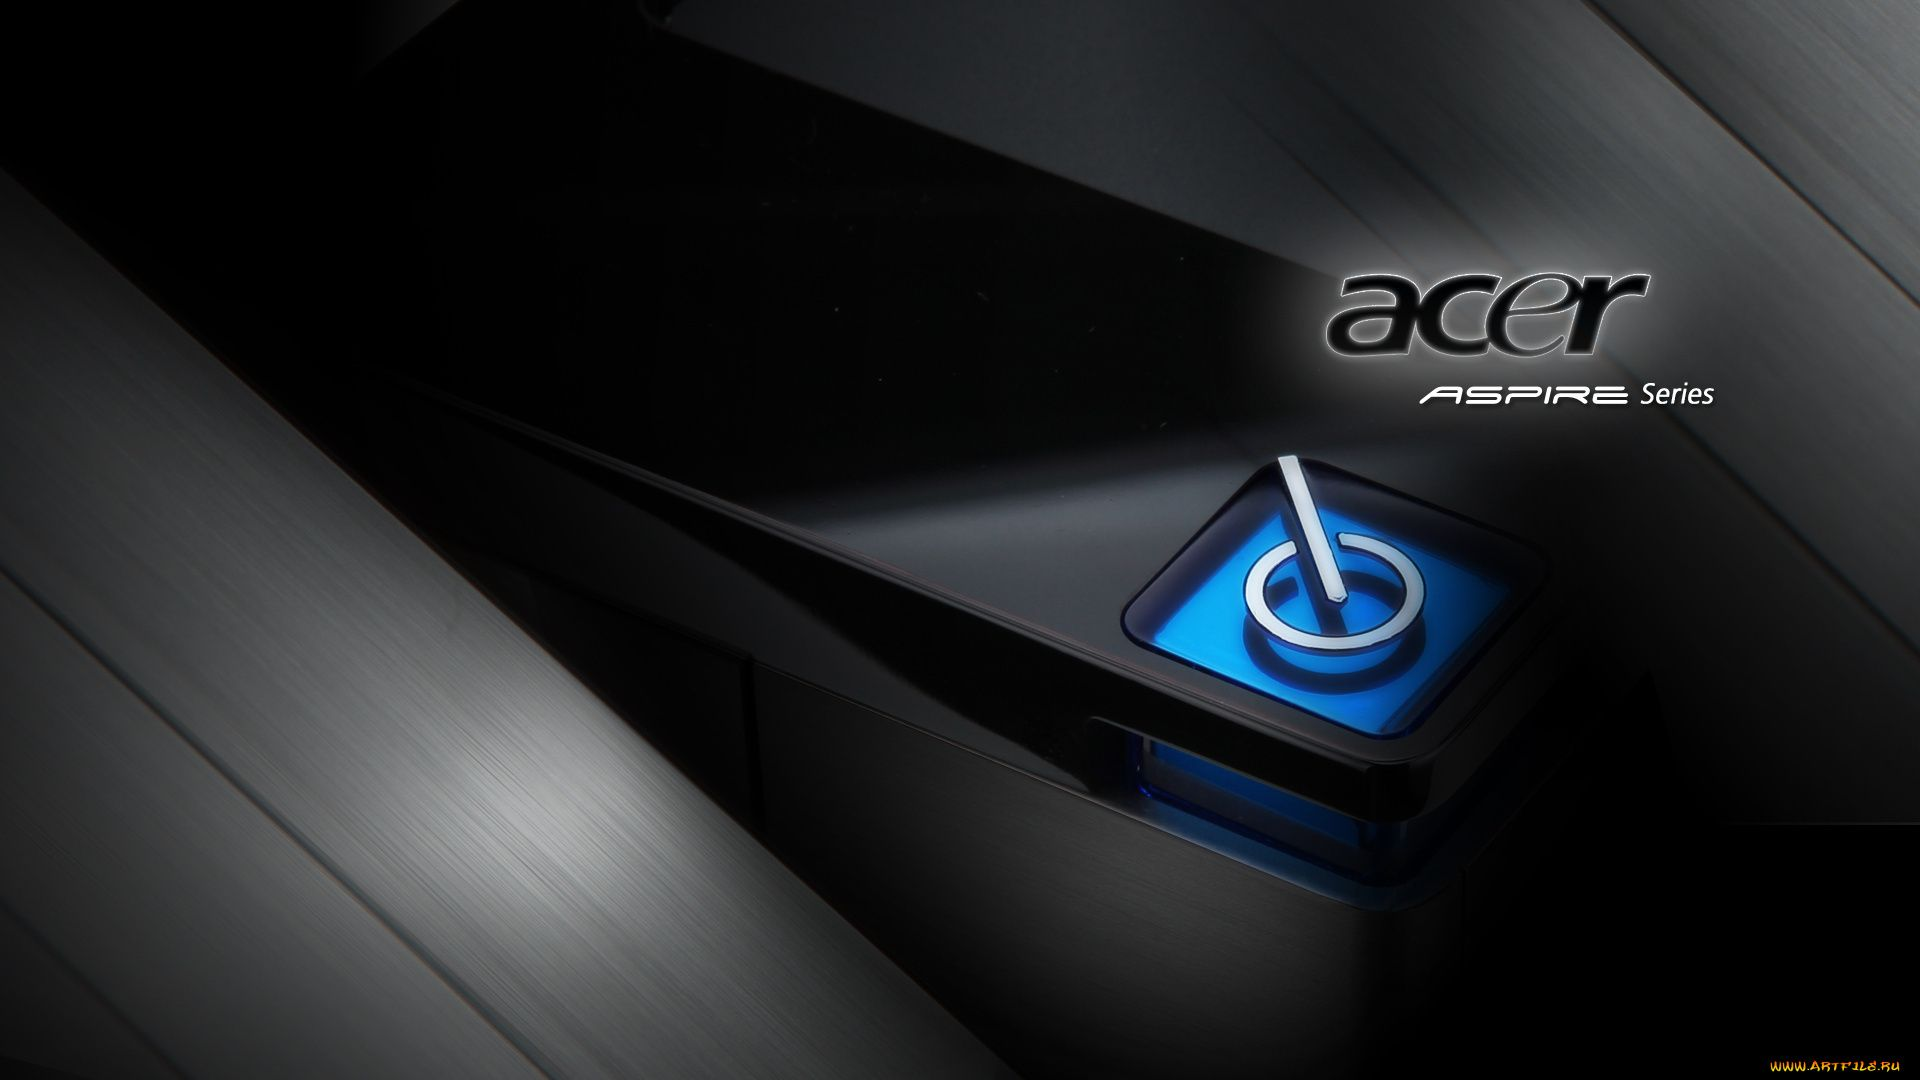 Screensaver Acer Aspire Desktop